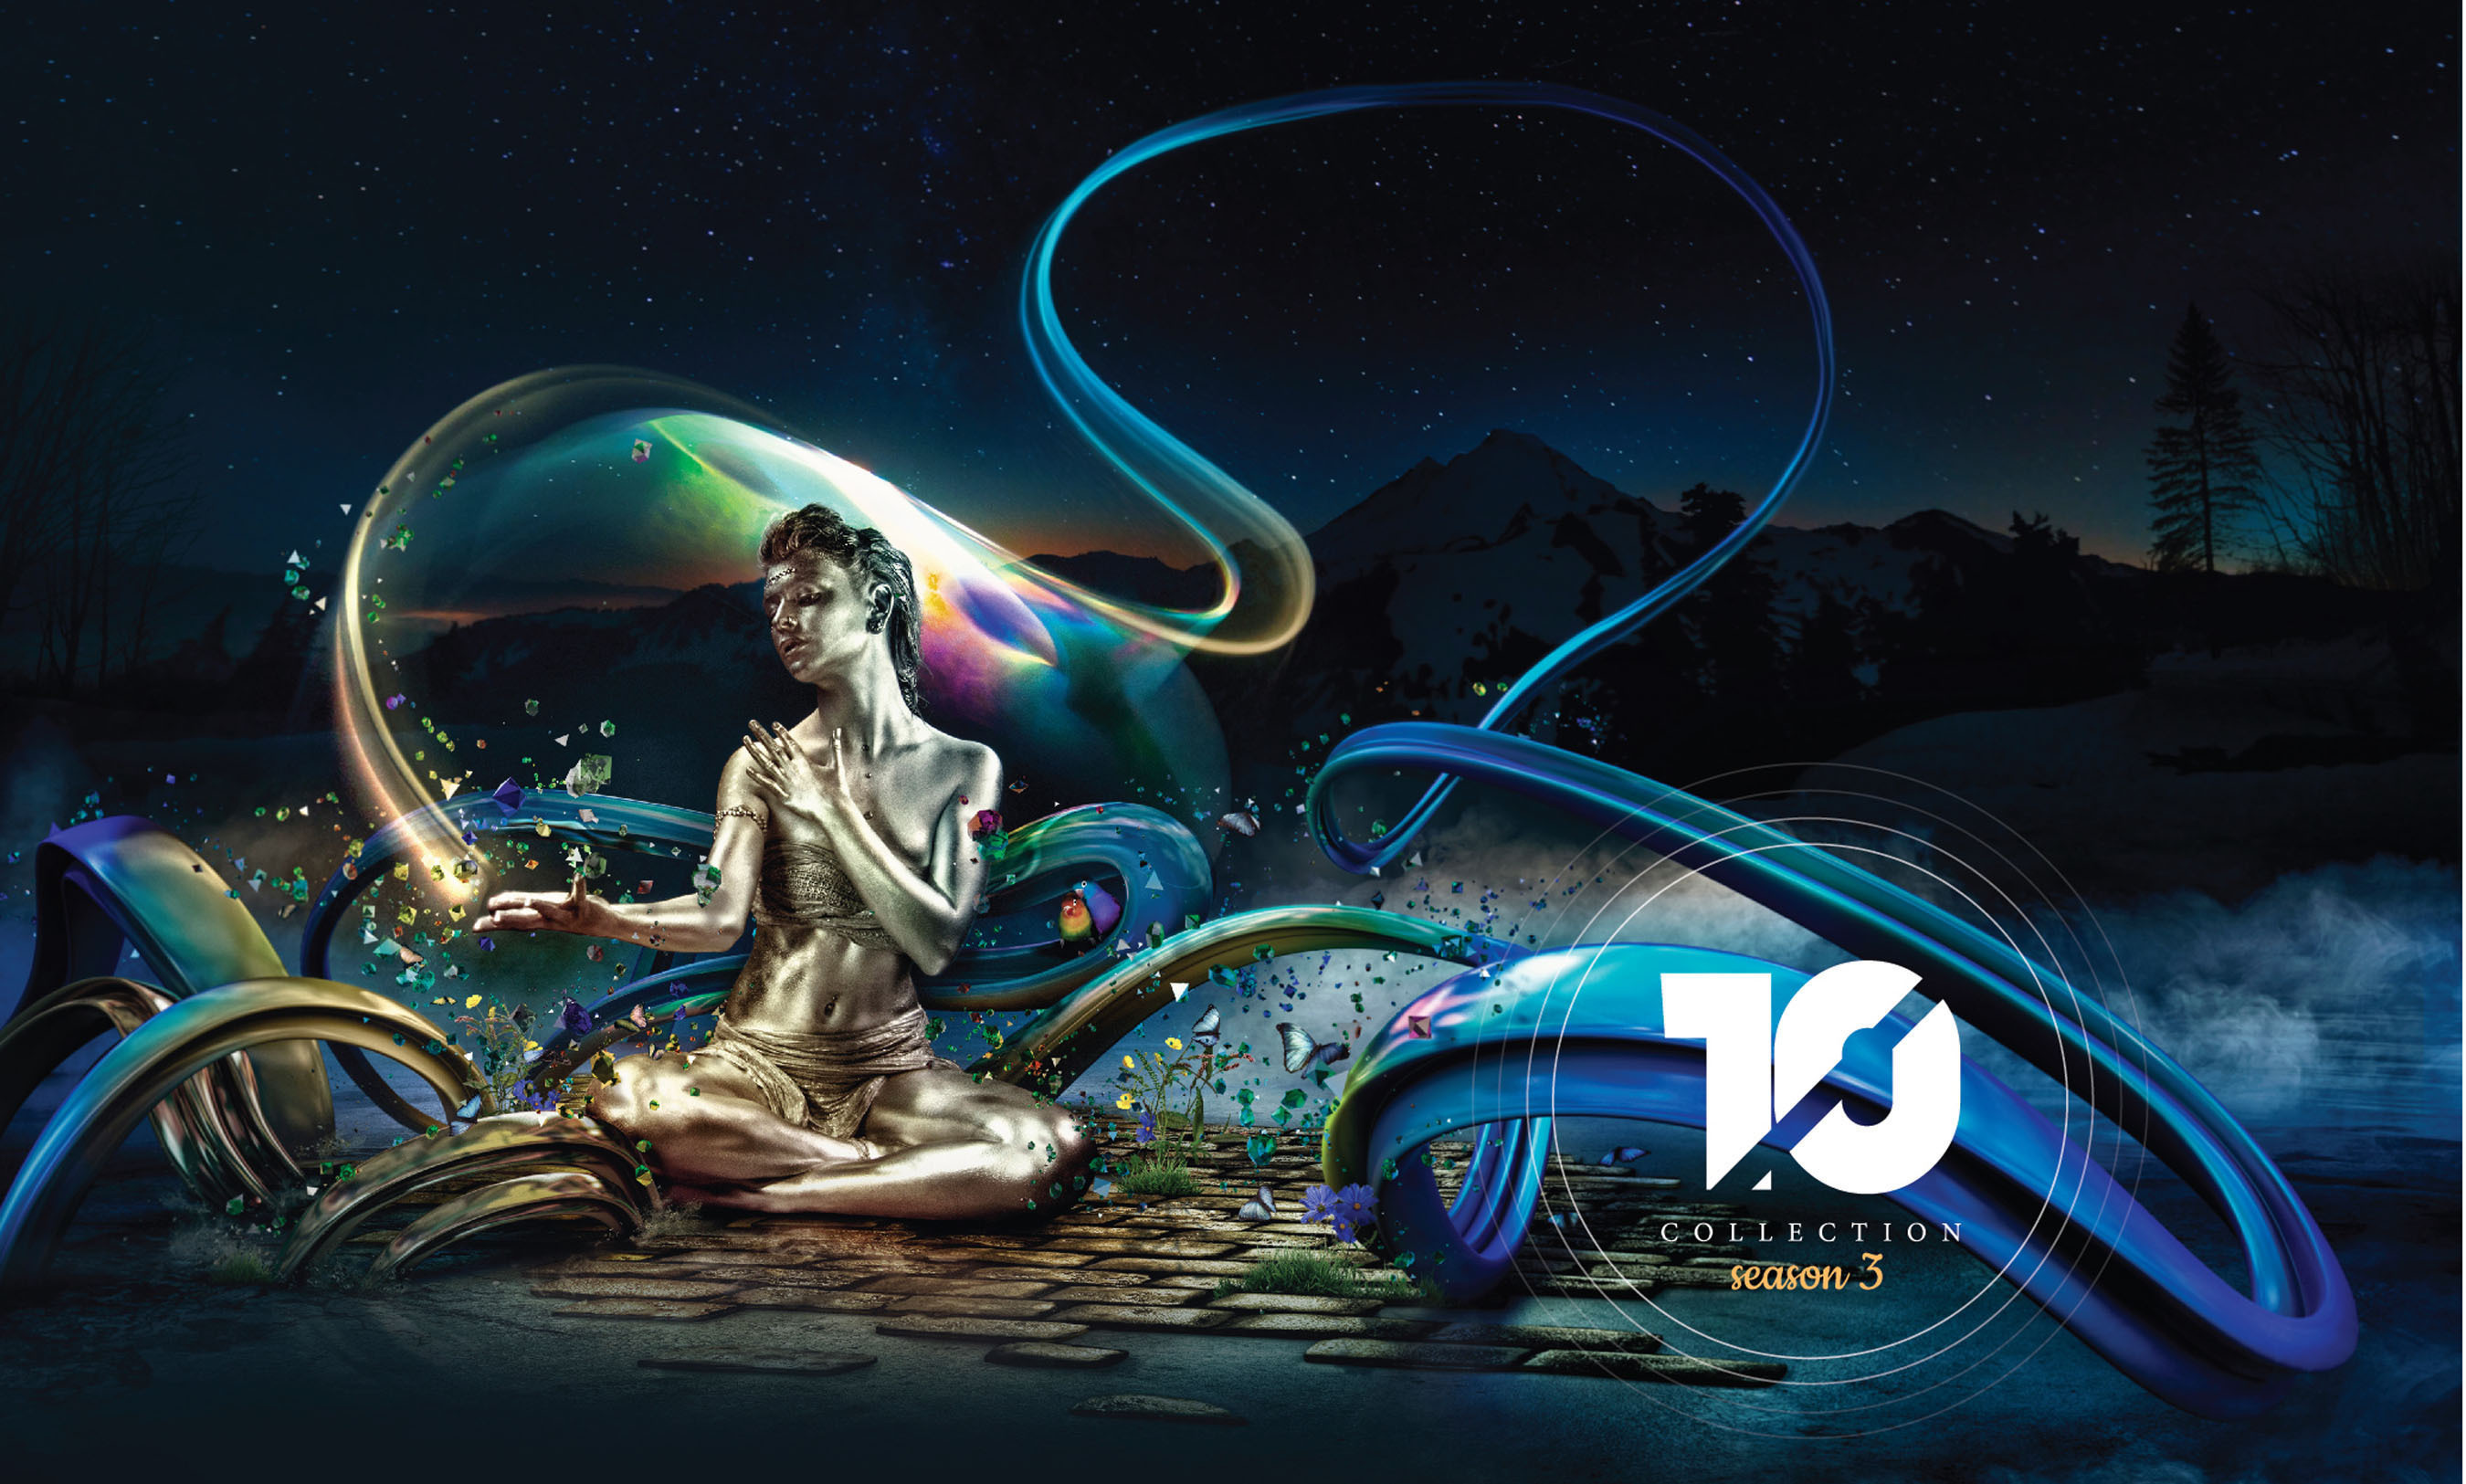 Fotolia Presents TEN Collection with Photographers and Designers Showcasing Vision of the Future